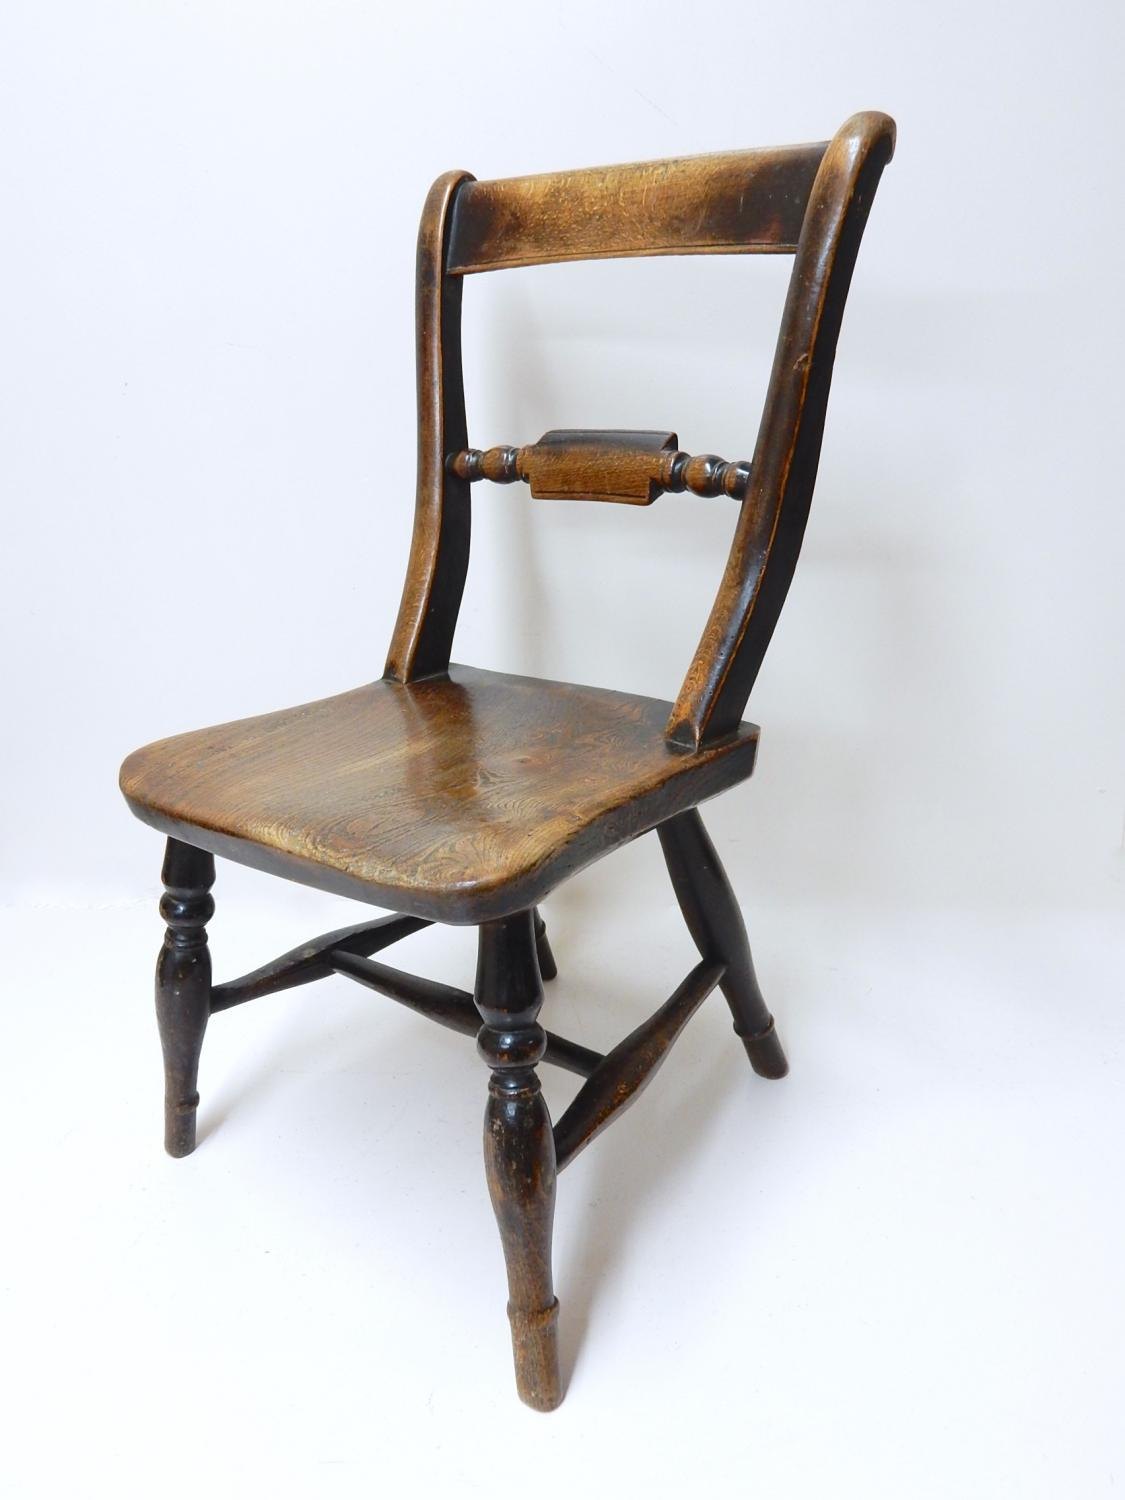 Antique Windsor Child's Chair - picture 1 ... - Antique Windsor Child's Chair In Sold